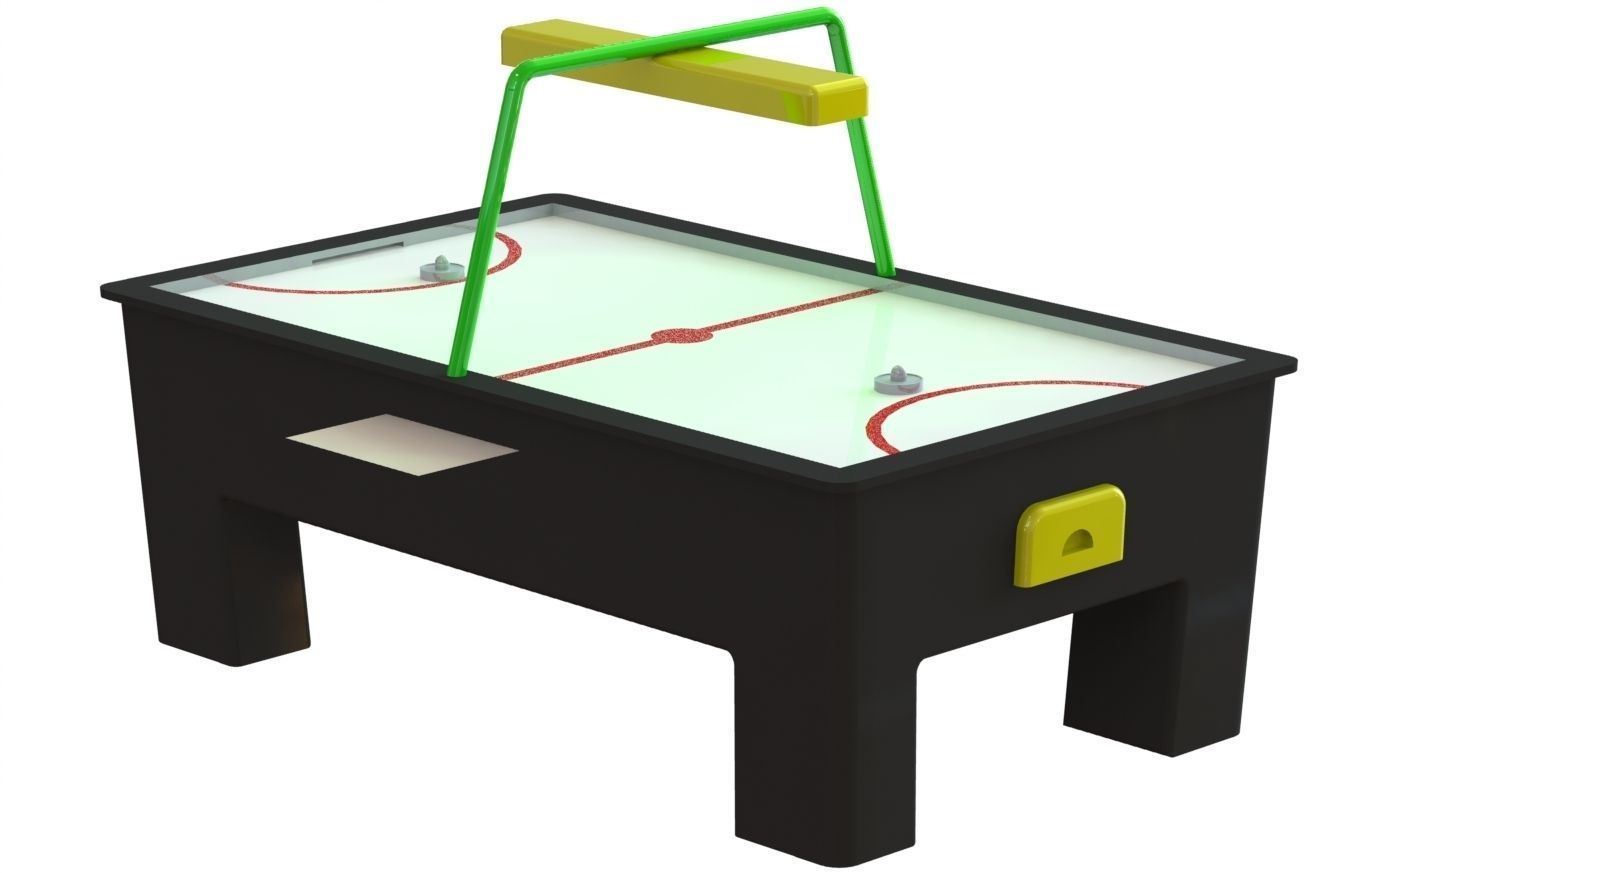 air hockey table 3d model stl dwg sldprt sldasm slddrw 1